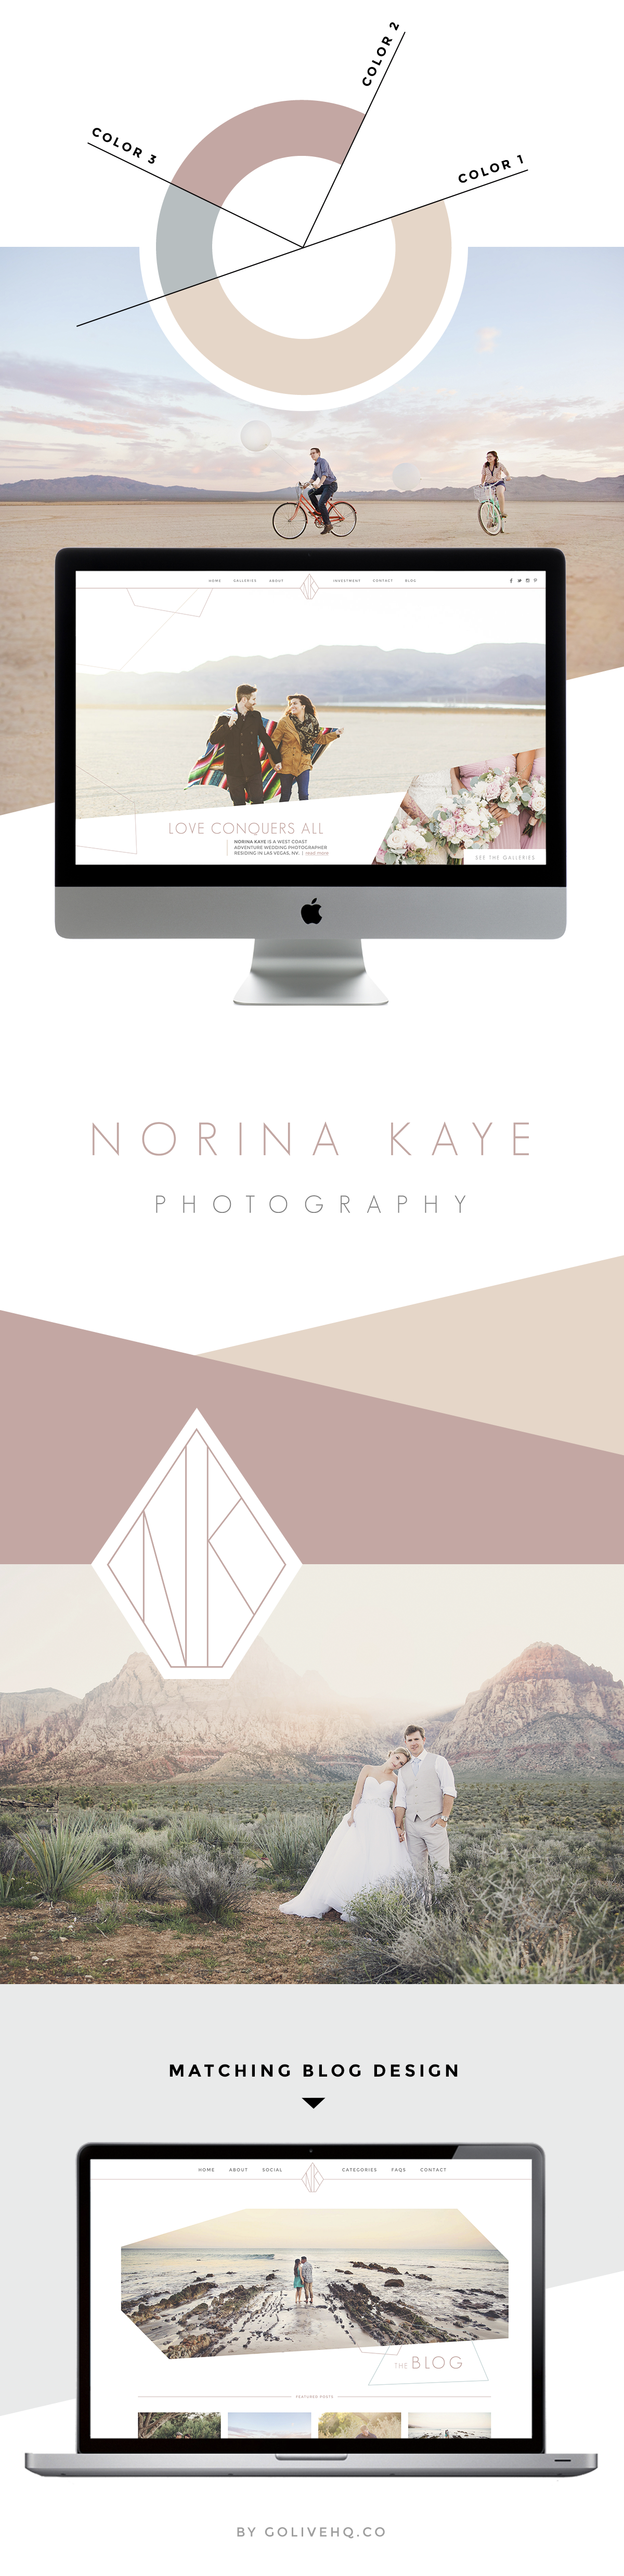 NORINA KAYE IS LIVE ON SHOWIT | Website Design By Go Live ...